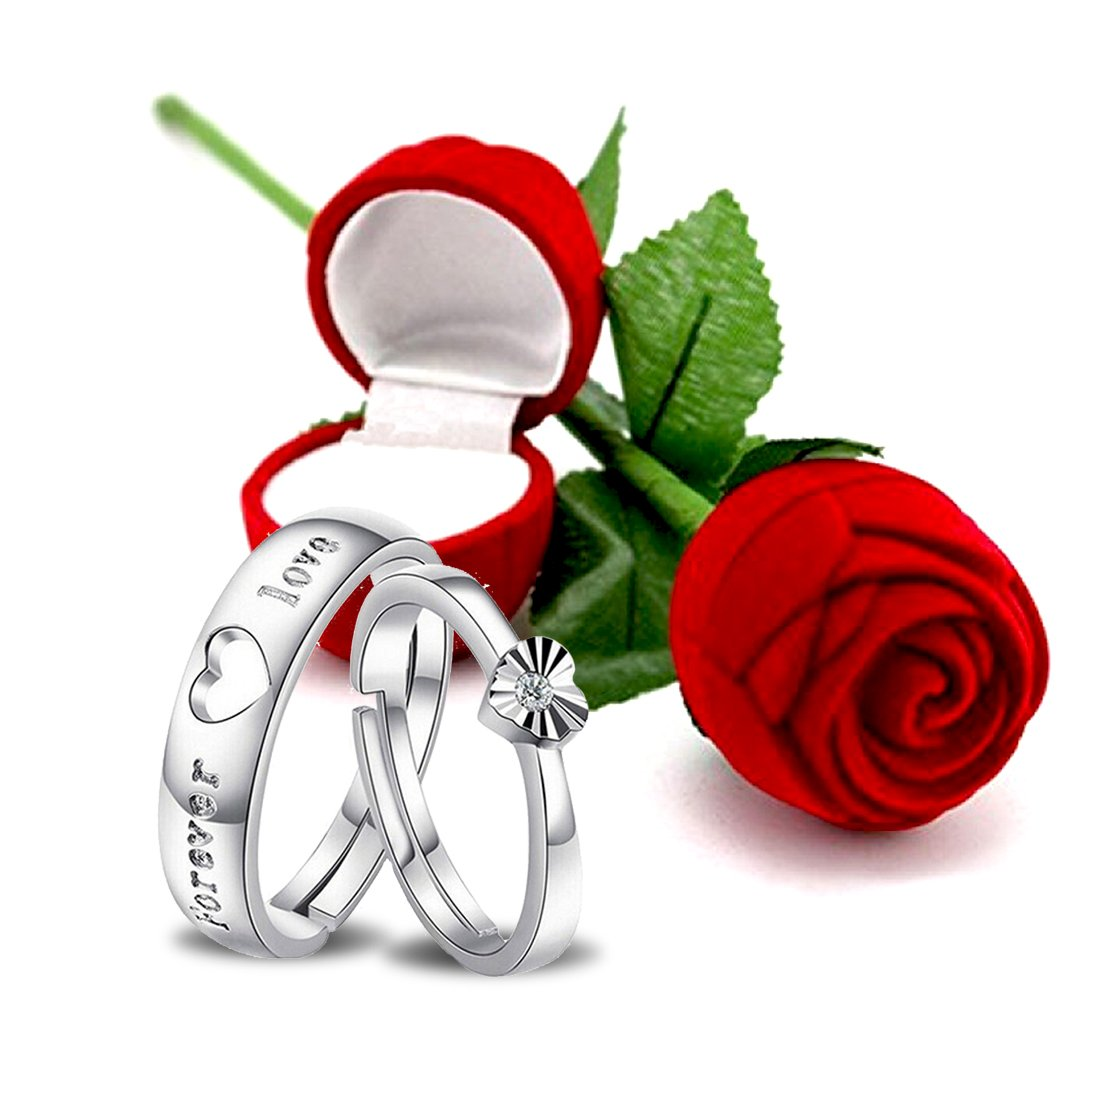 Buy Peora Valentine S Day Gift Hamper Of Couple Ring With Red Rose Gift Box For Boyfriend Girlfriend Gift For Valentine Gift For Him At Amazon In